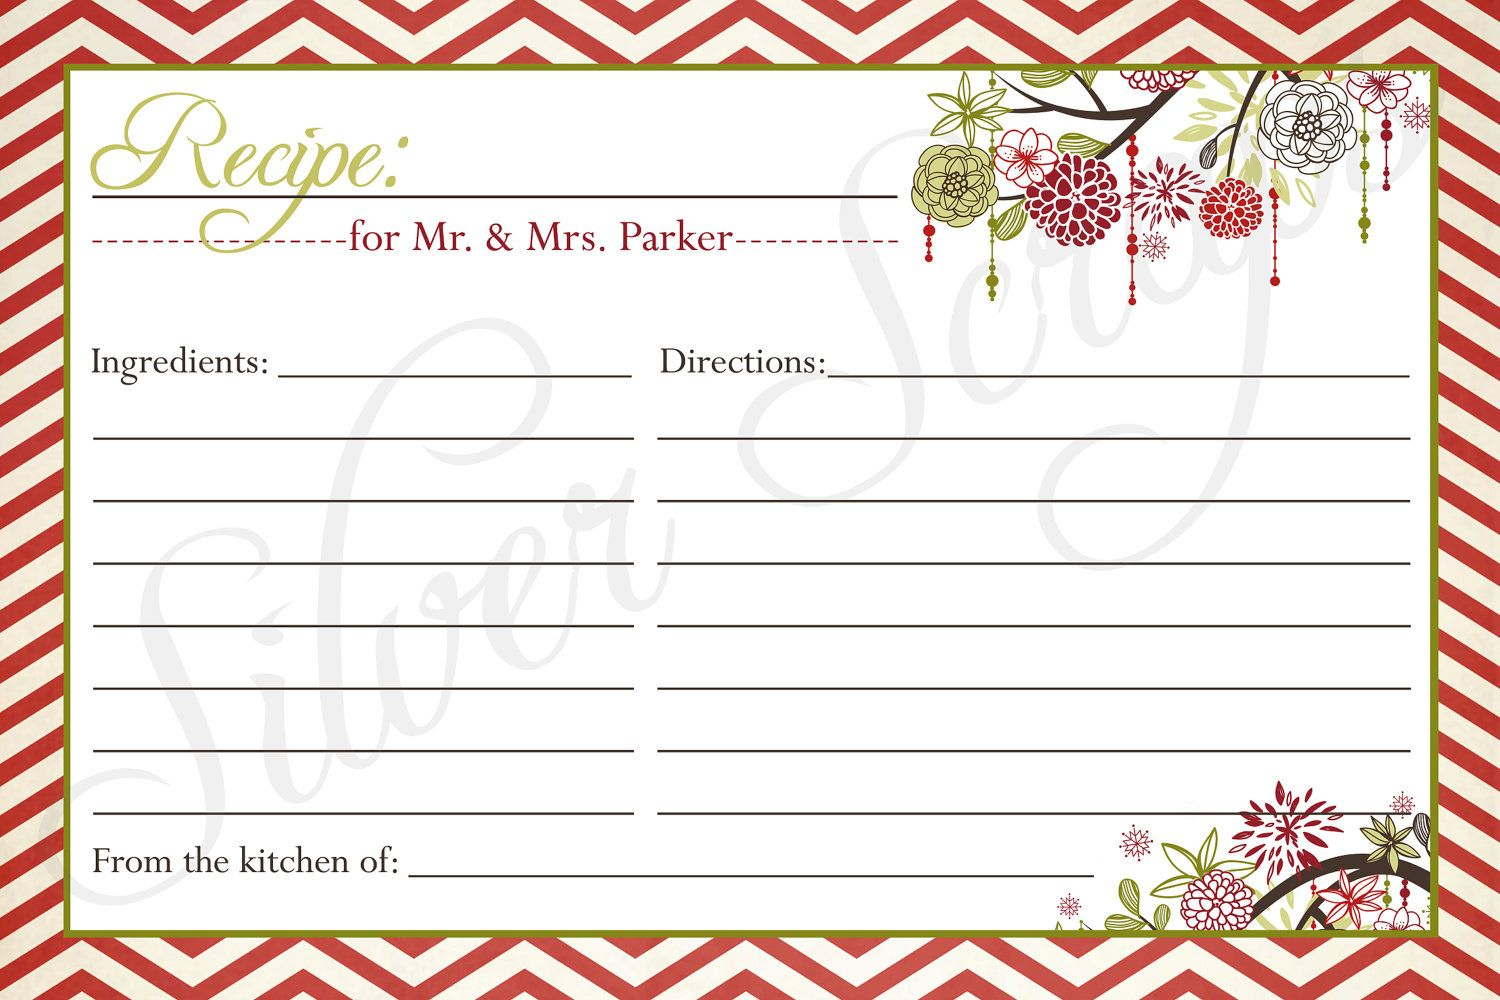 Clipart For Recipe Cards Intended For Free Recipe Card Templates For Microsoft Word Professi Recipe Cards Template Holiday Recipe Card Christmas Recipe Cards